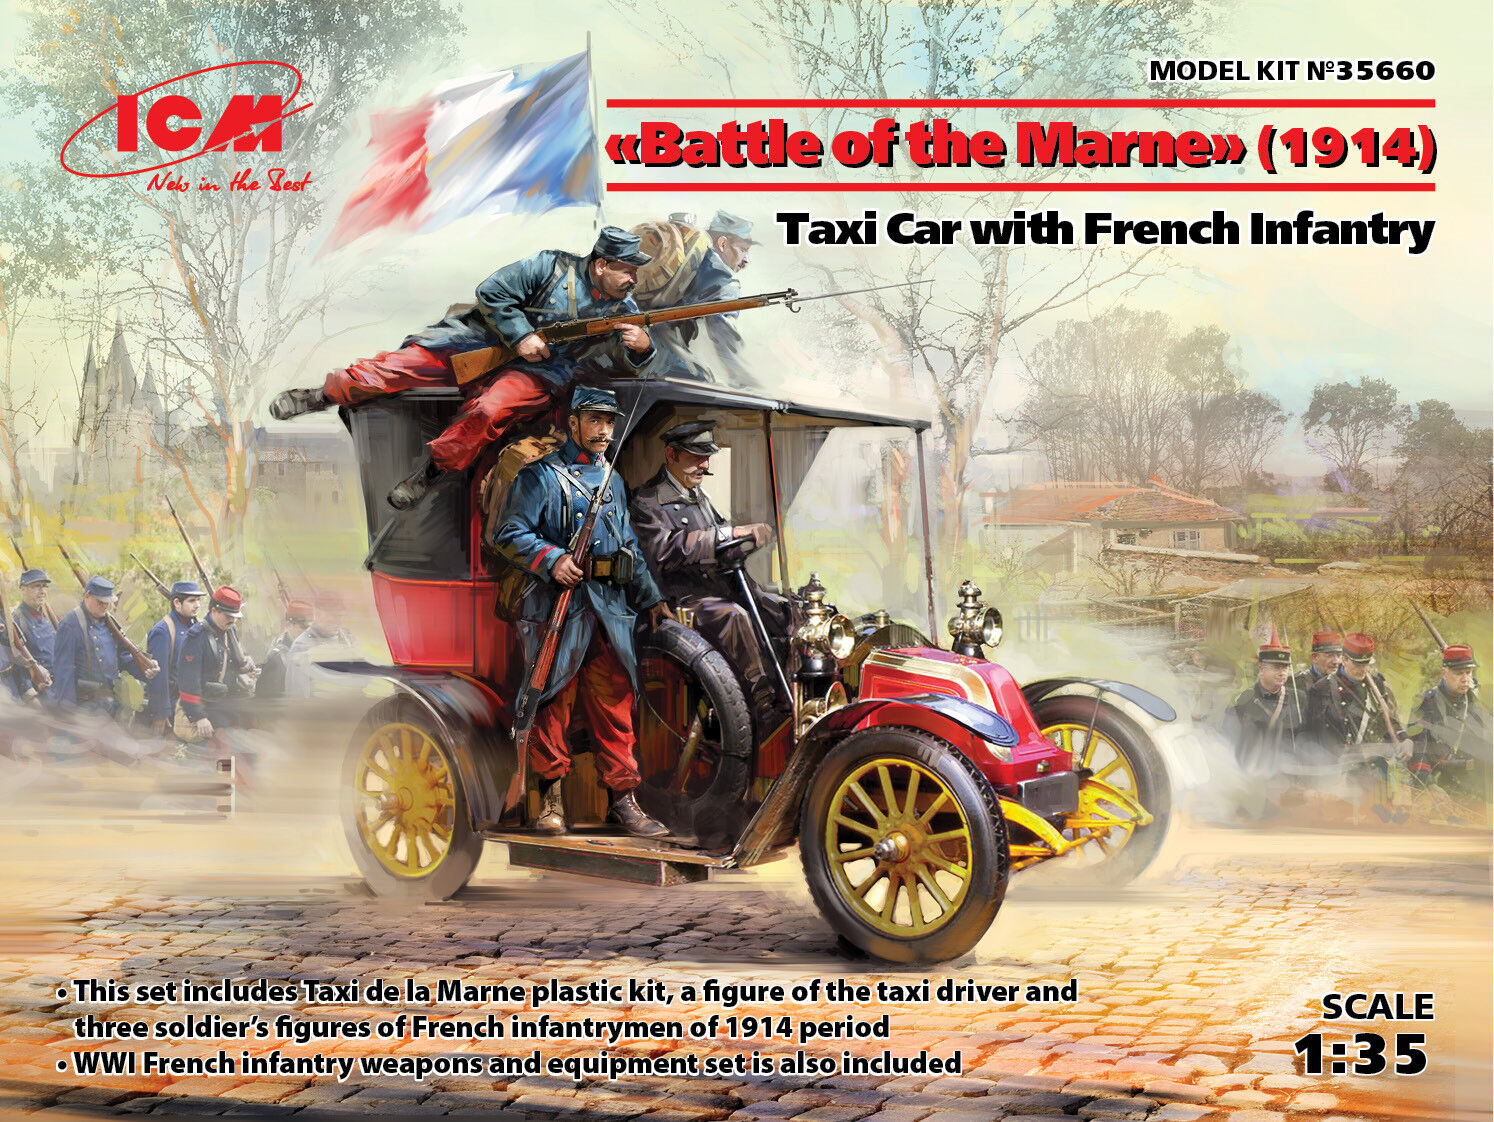 ICM 1 35 Battle of Marne (1914) Taxi Taxi Taxi Car with French Infantry 96dc77